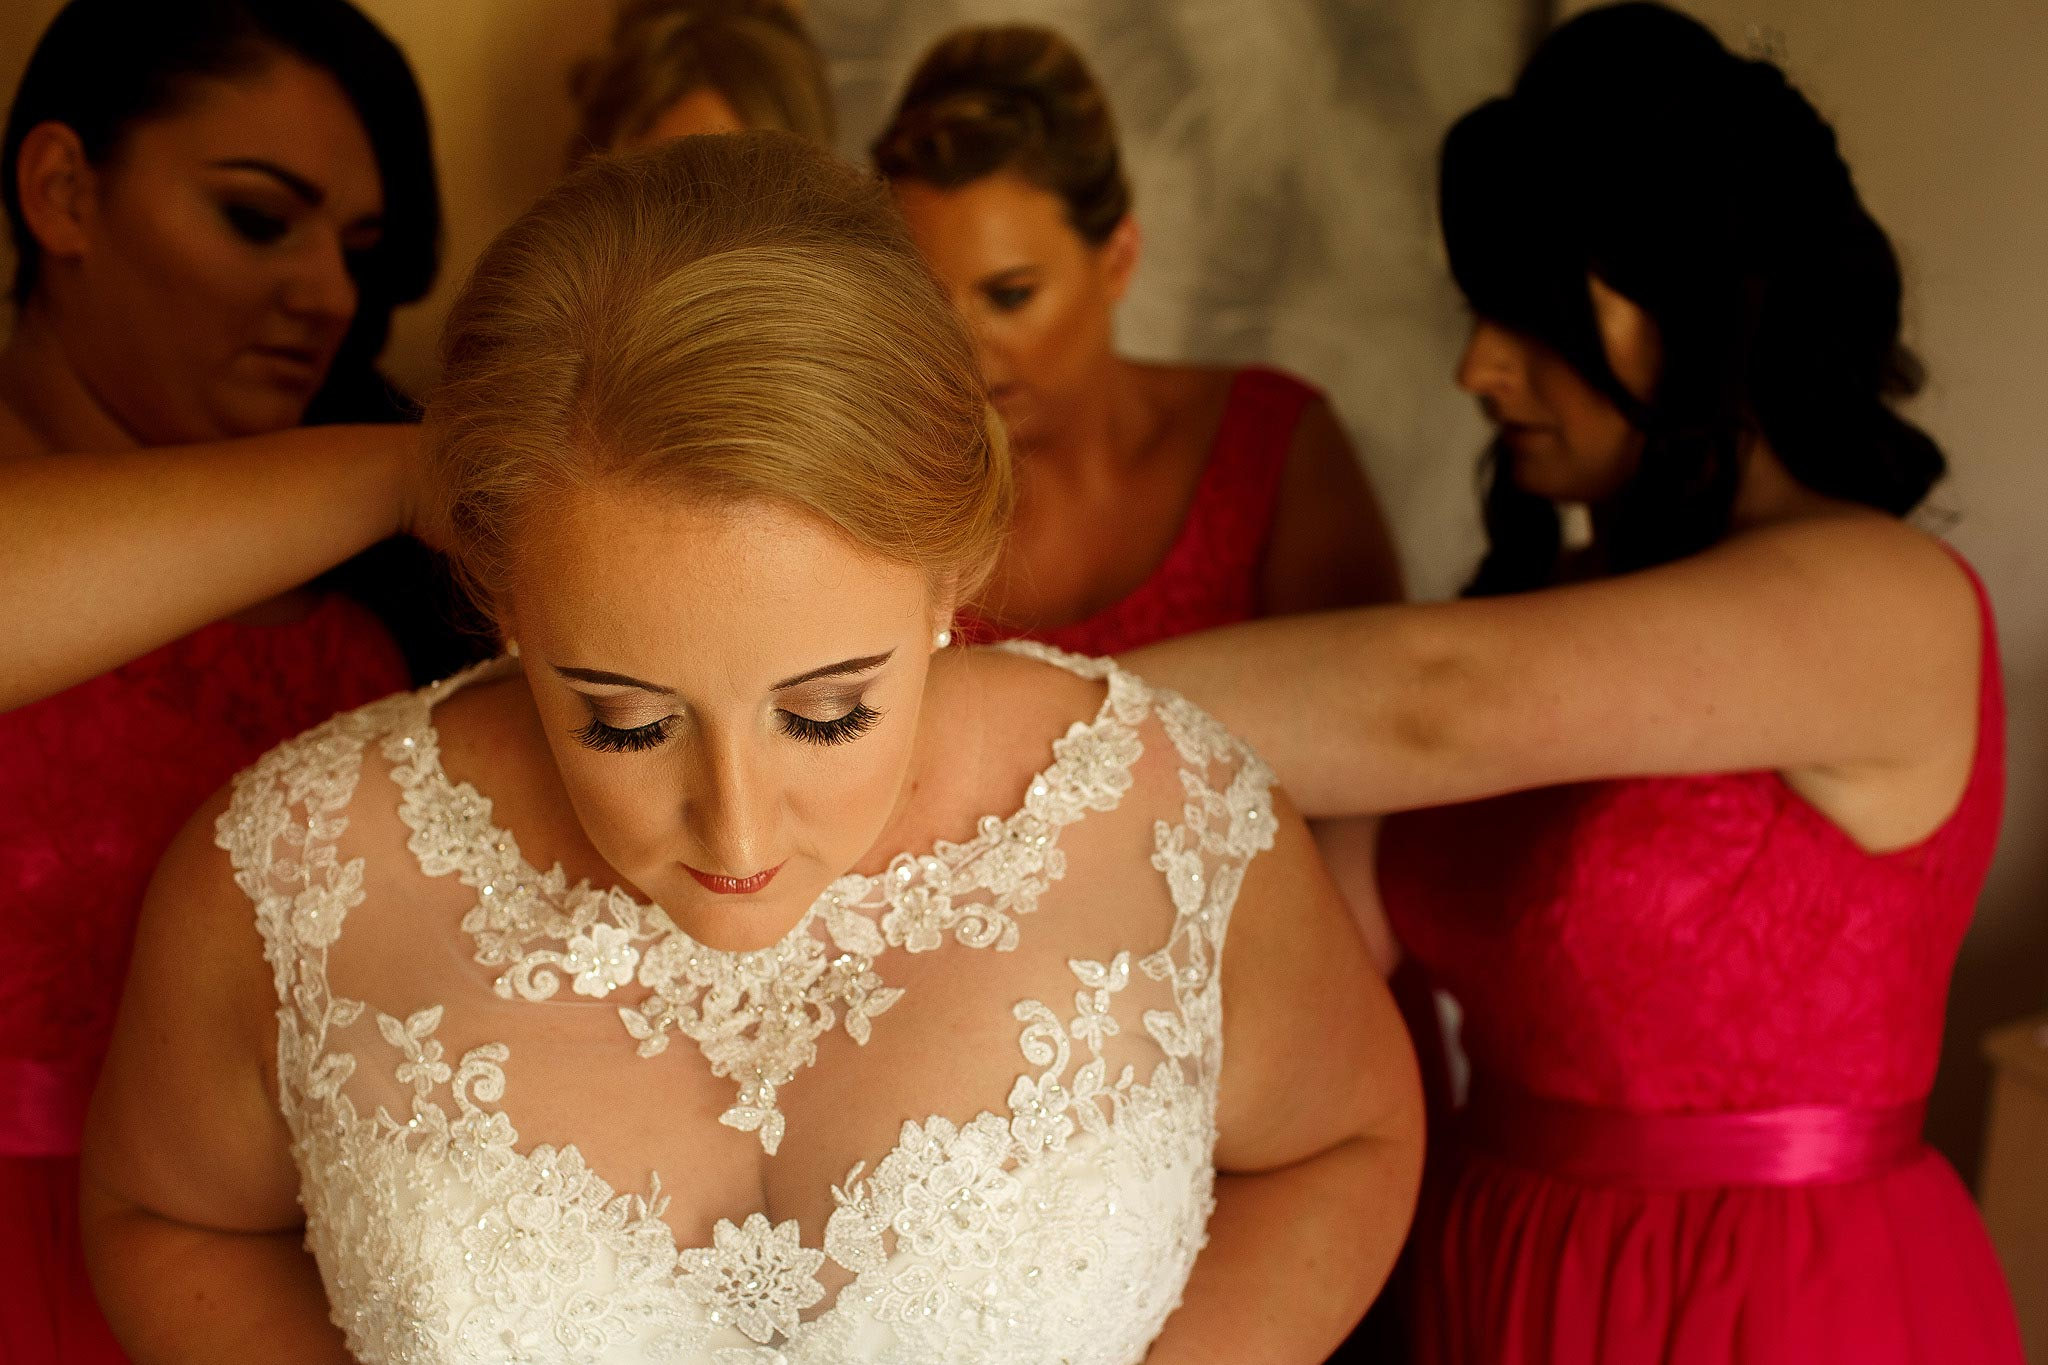 Photograph of a bride with her eyes closed as her bridesmaids fasten her dress.